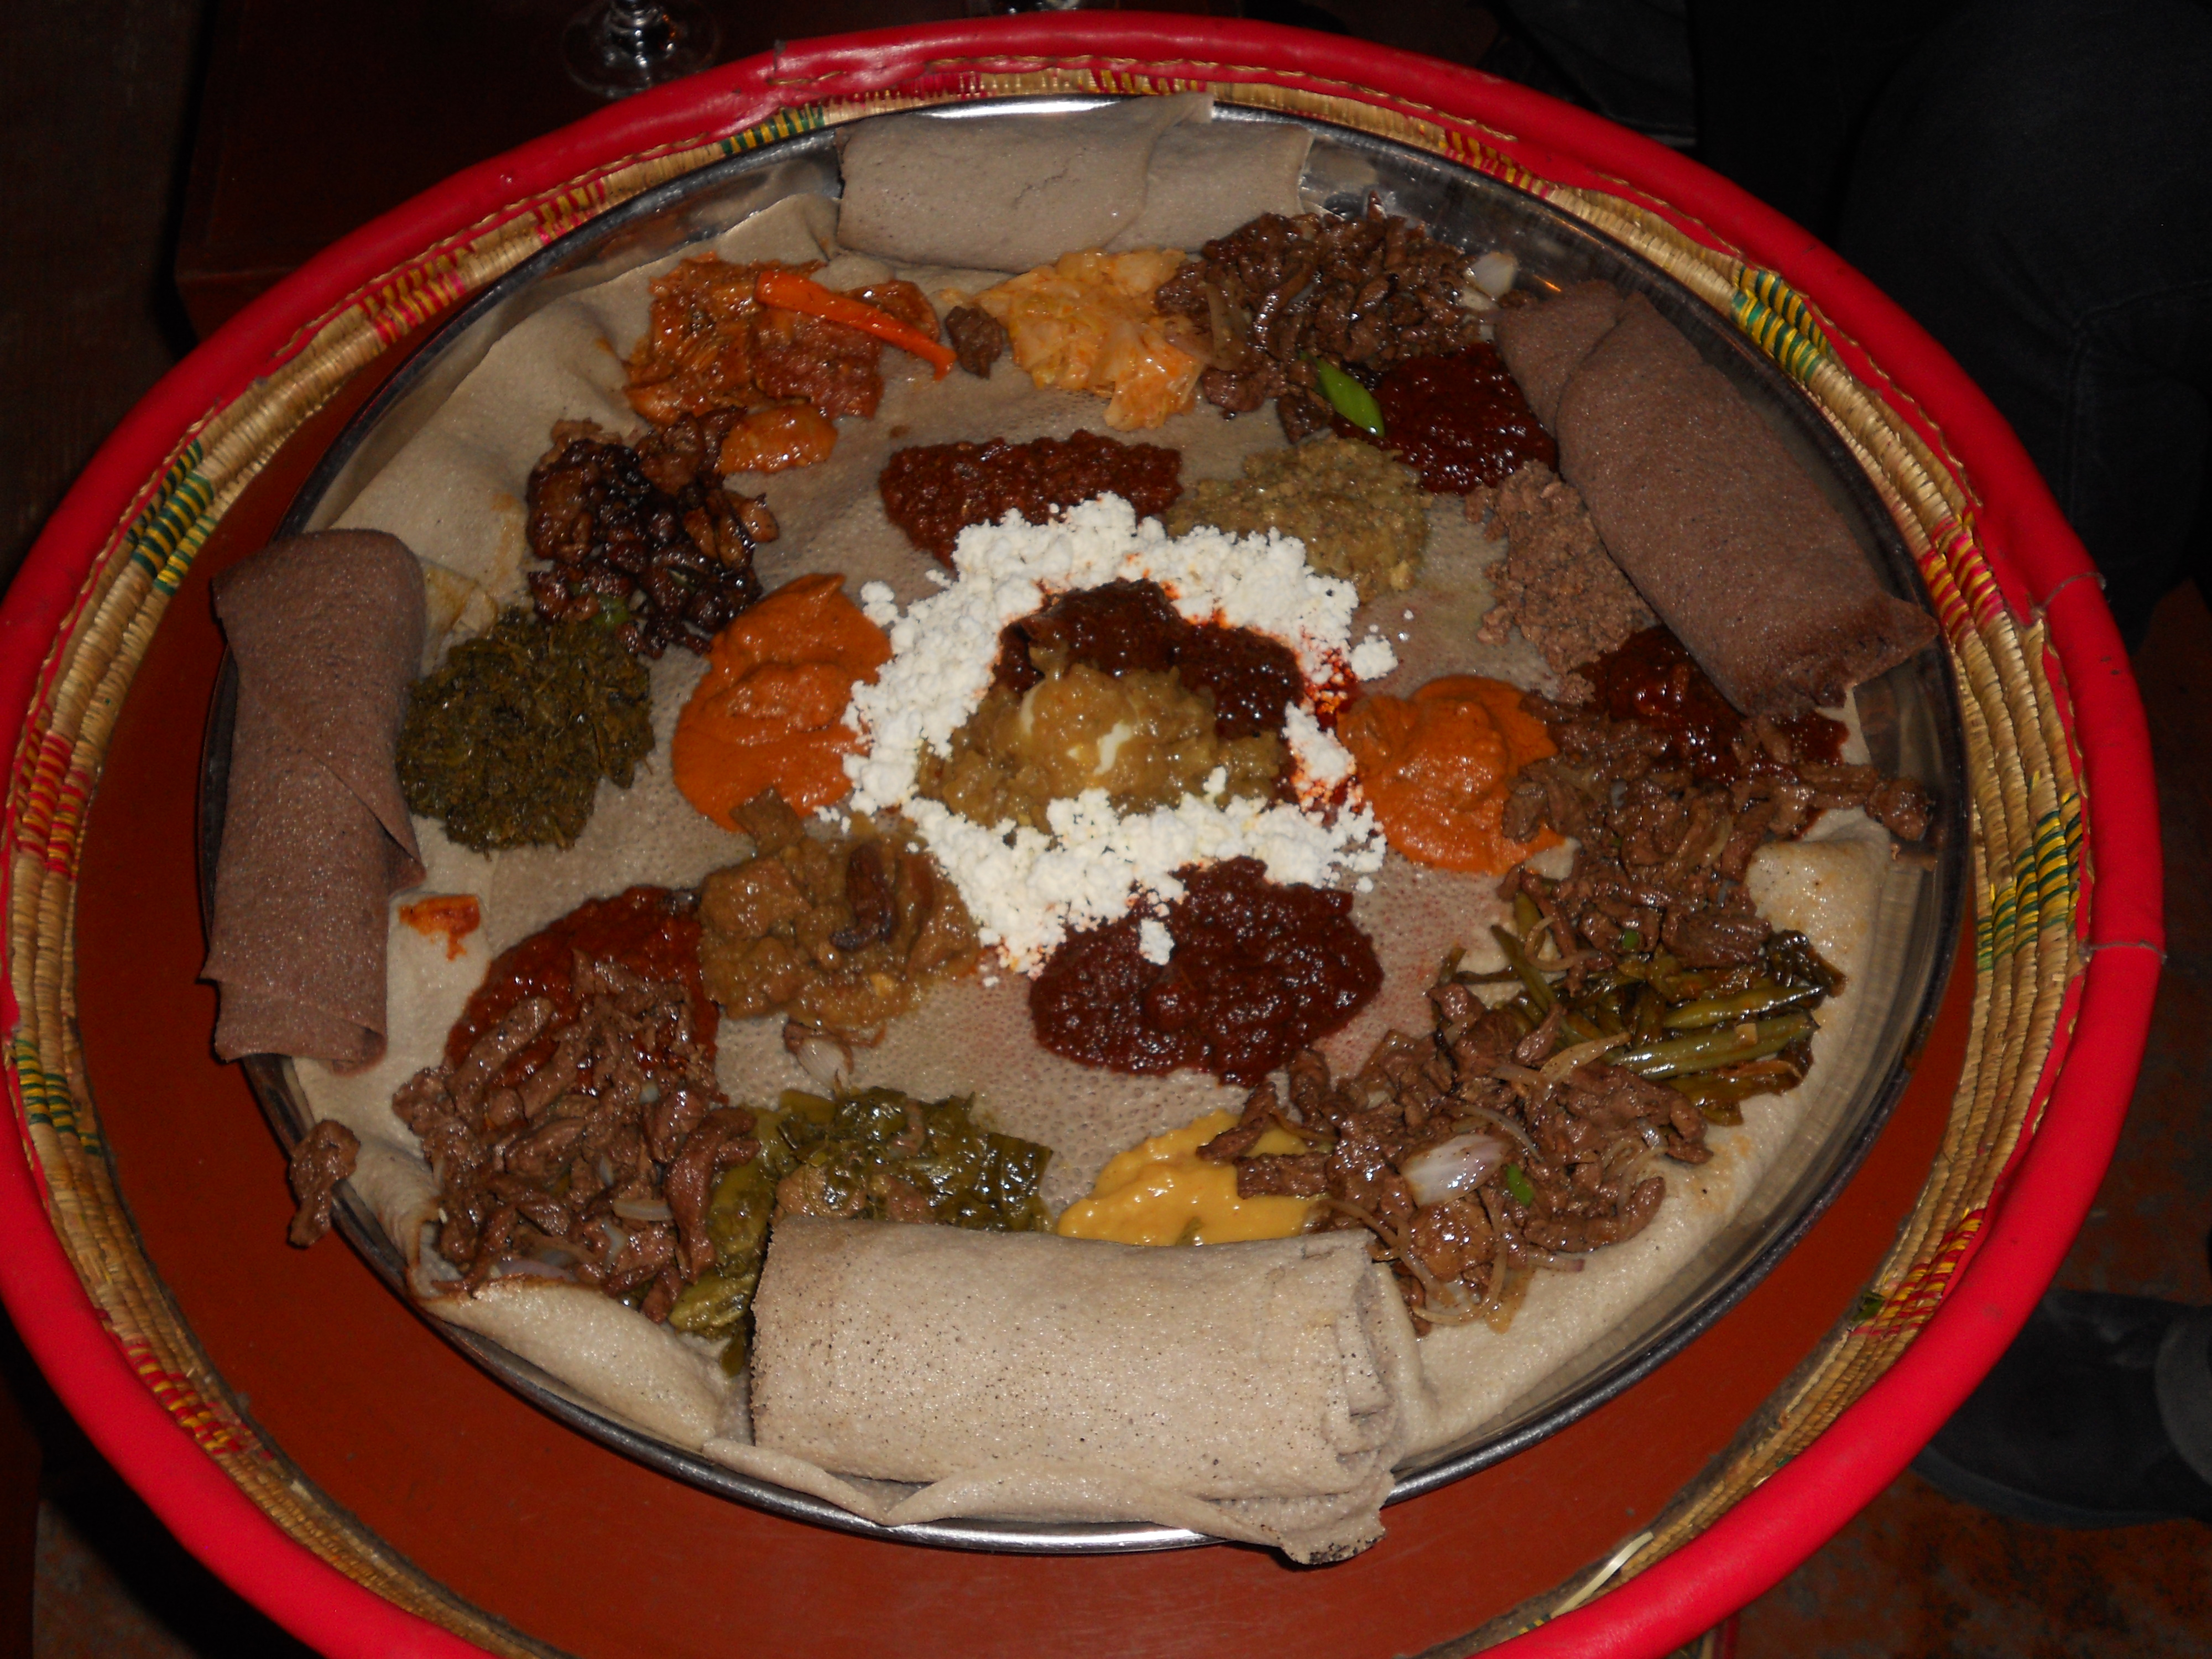 ethiopian cultural food For a crash course guide on ethiopian food, here are some tips on ethiopian dining etiquette and a list of the best local dishes to try.